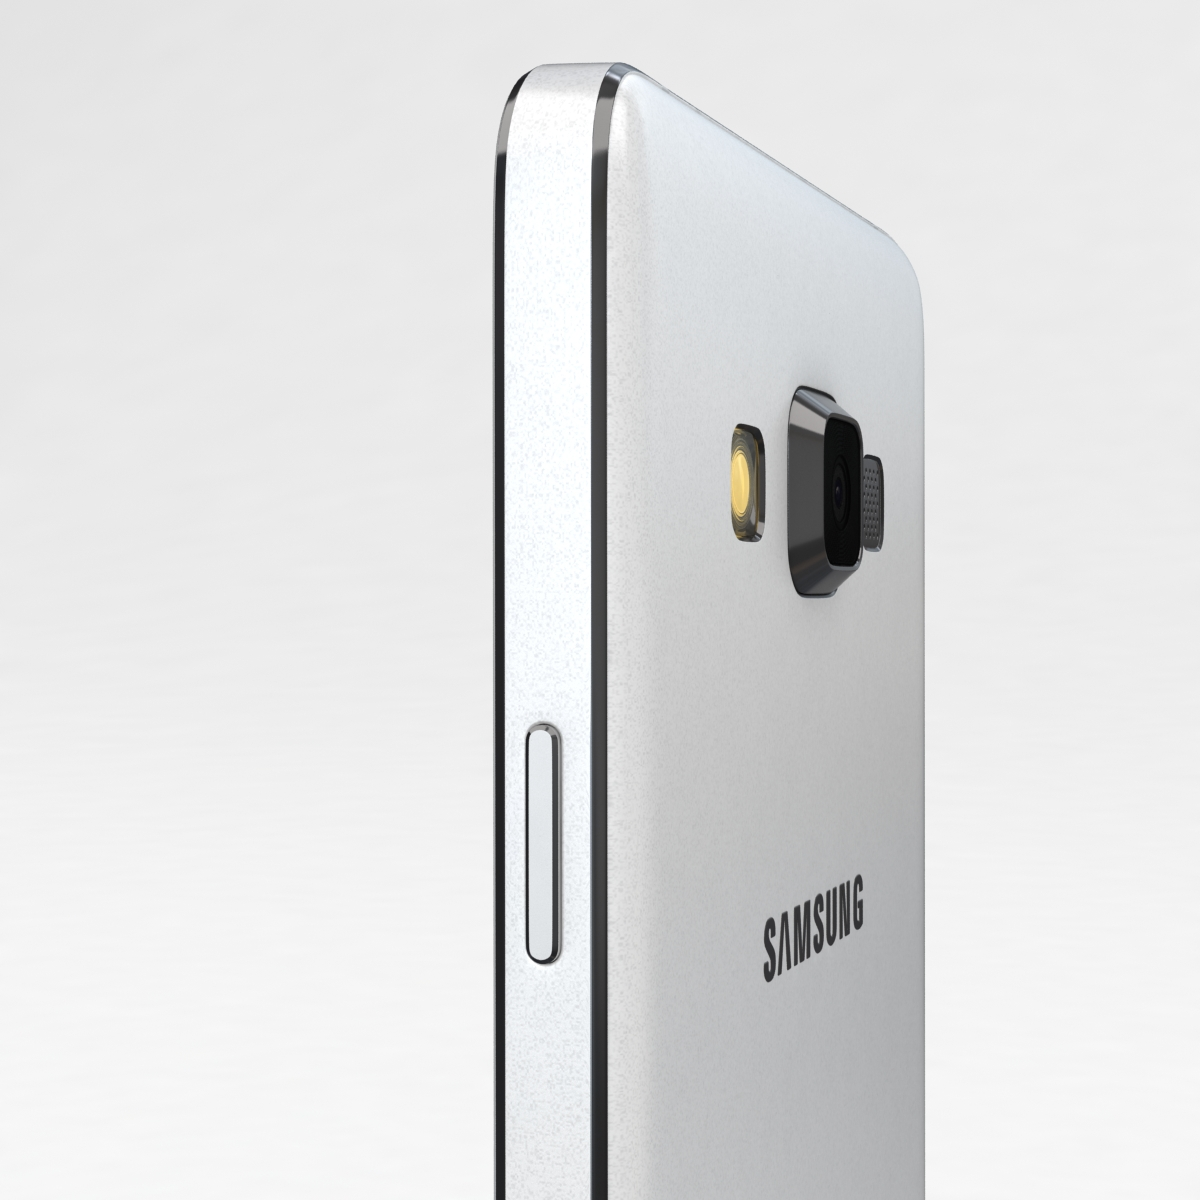 samsung galaxy a3 and a3 duos white 3d model 3ds max fbx c4d obj 206591